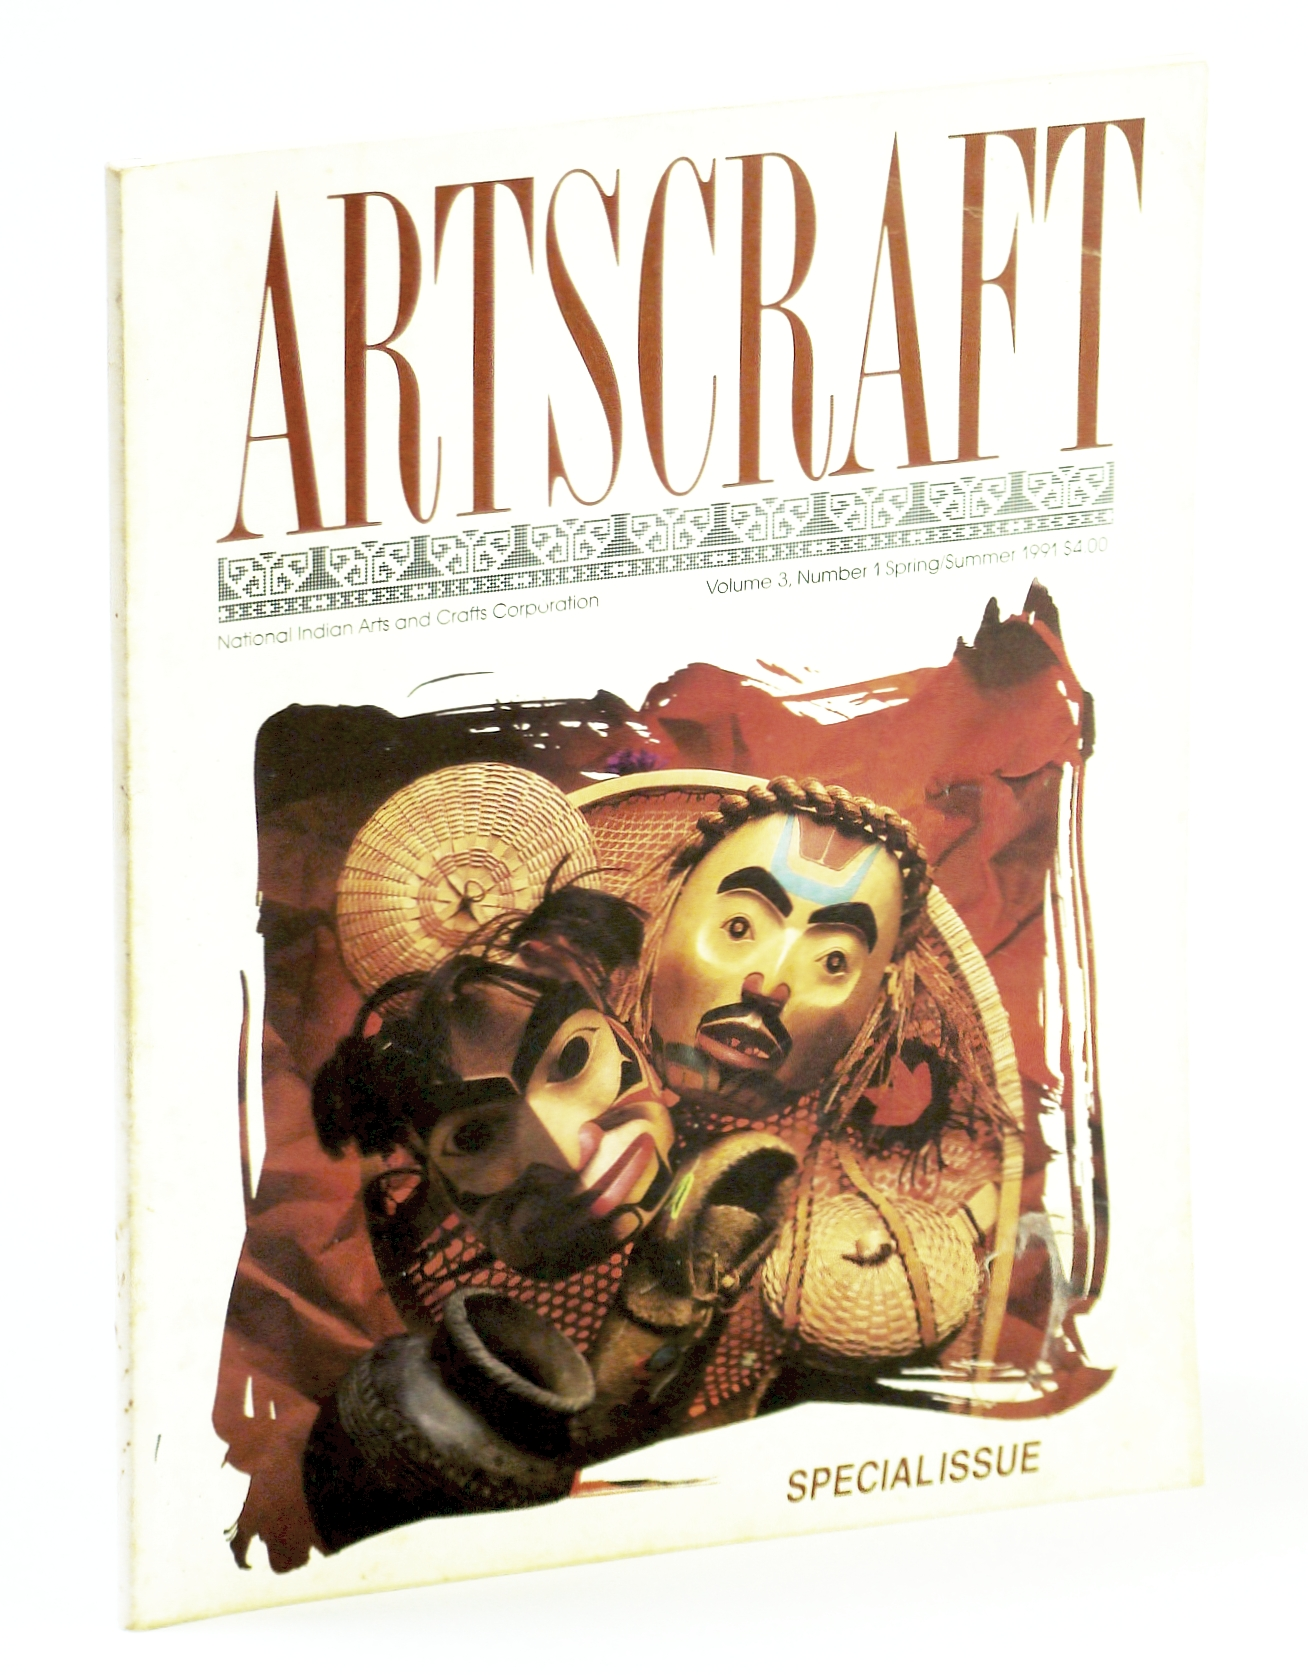 Image for Artscraft Magazine, Volume 3, Number 1 Spring / Summer 1991 - Special Cross-Country Issue